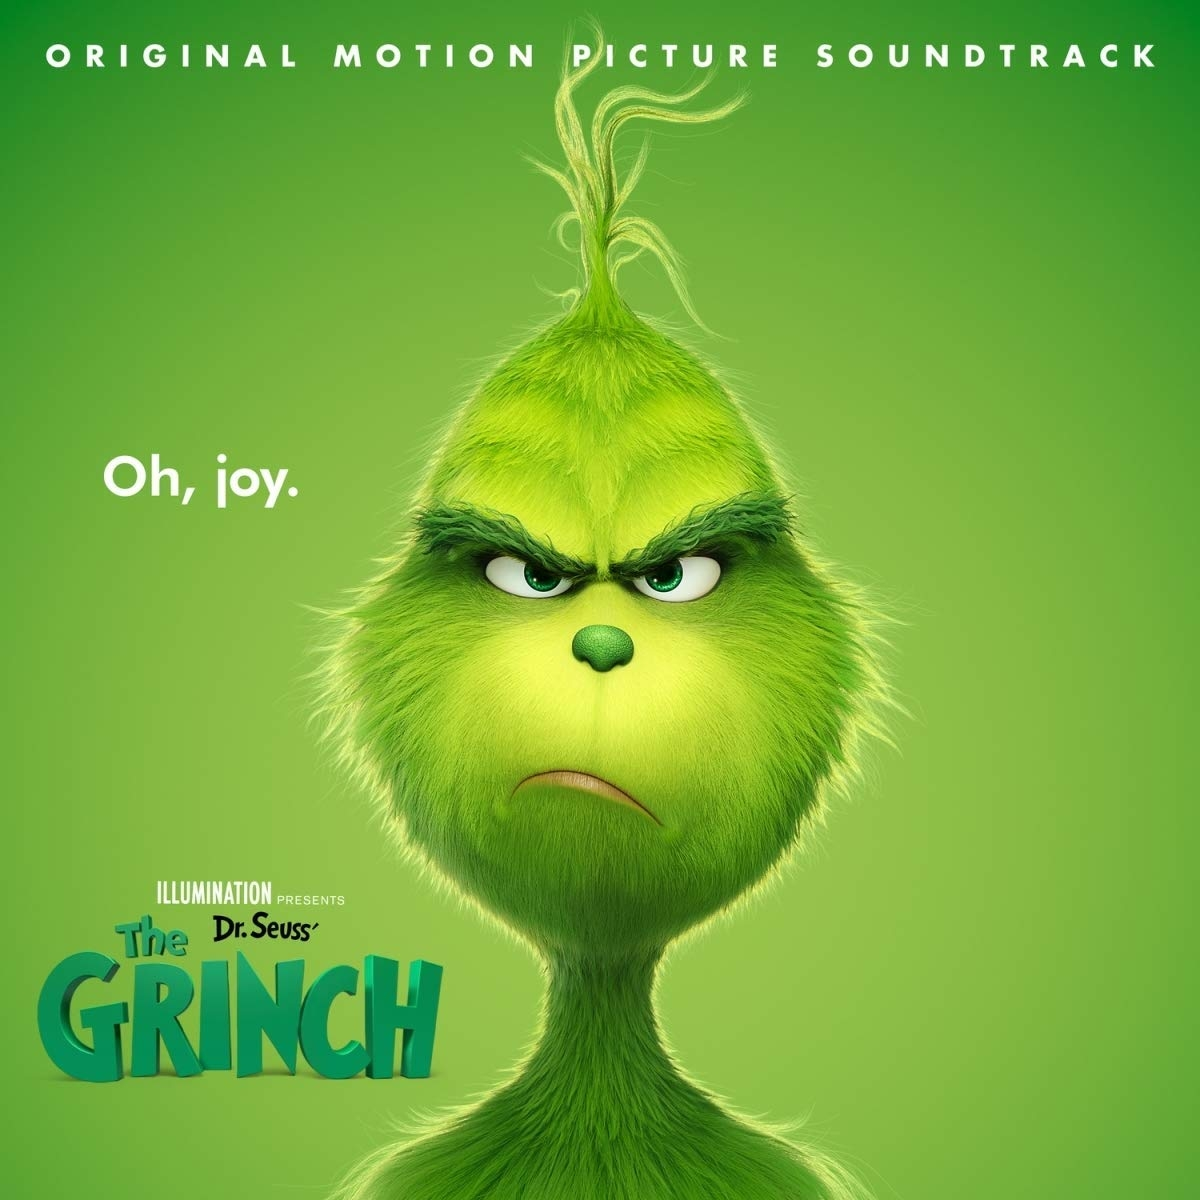 x mas 12 18 GRINCH ost